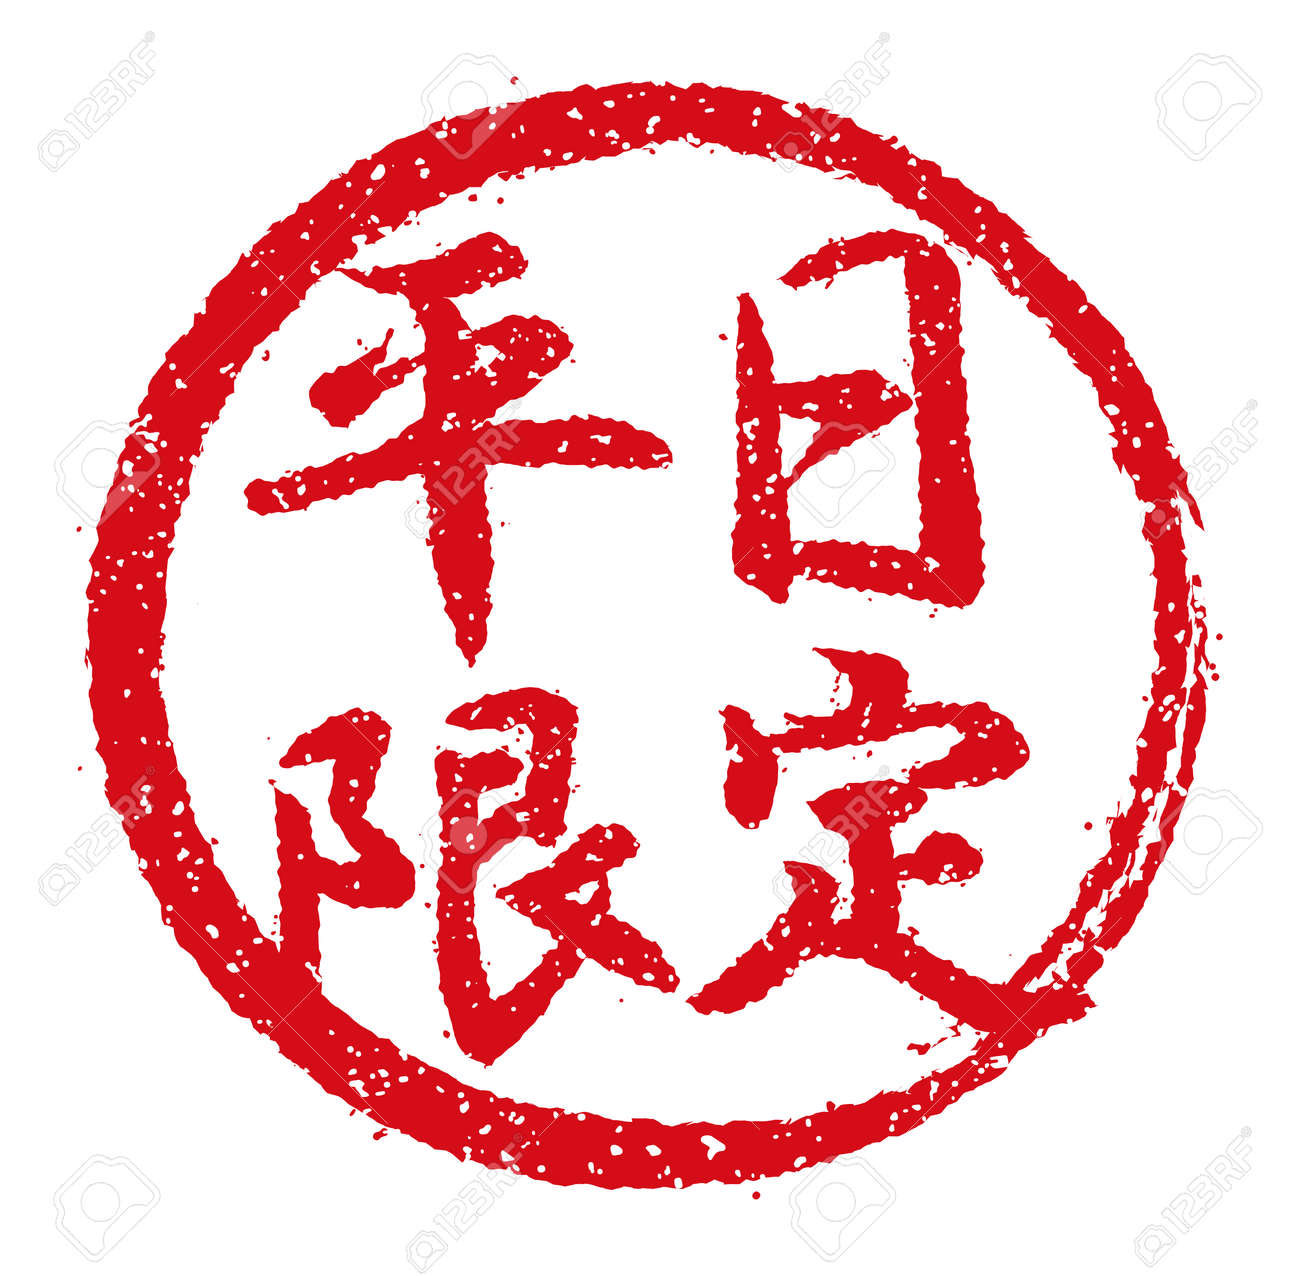 Rubber stamp illustration often used in Japanese restaurants and pubs | Weekdays only - 168732418